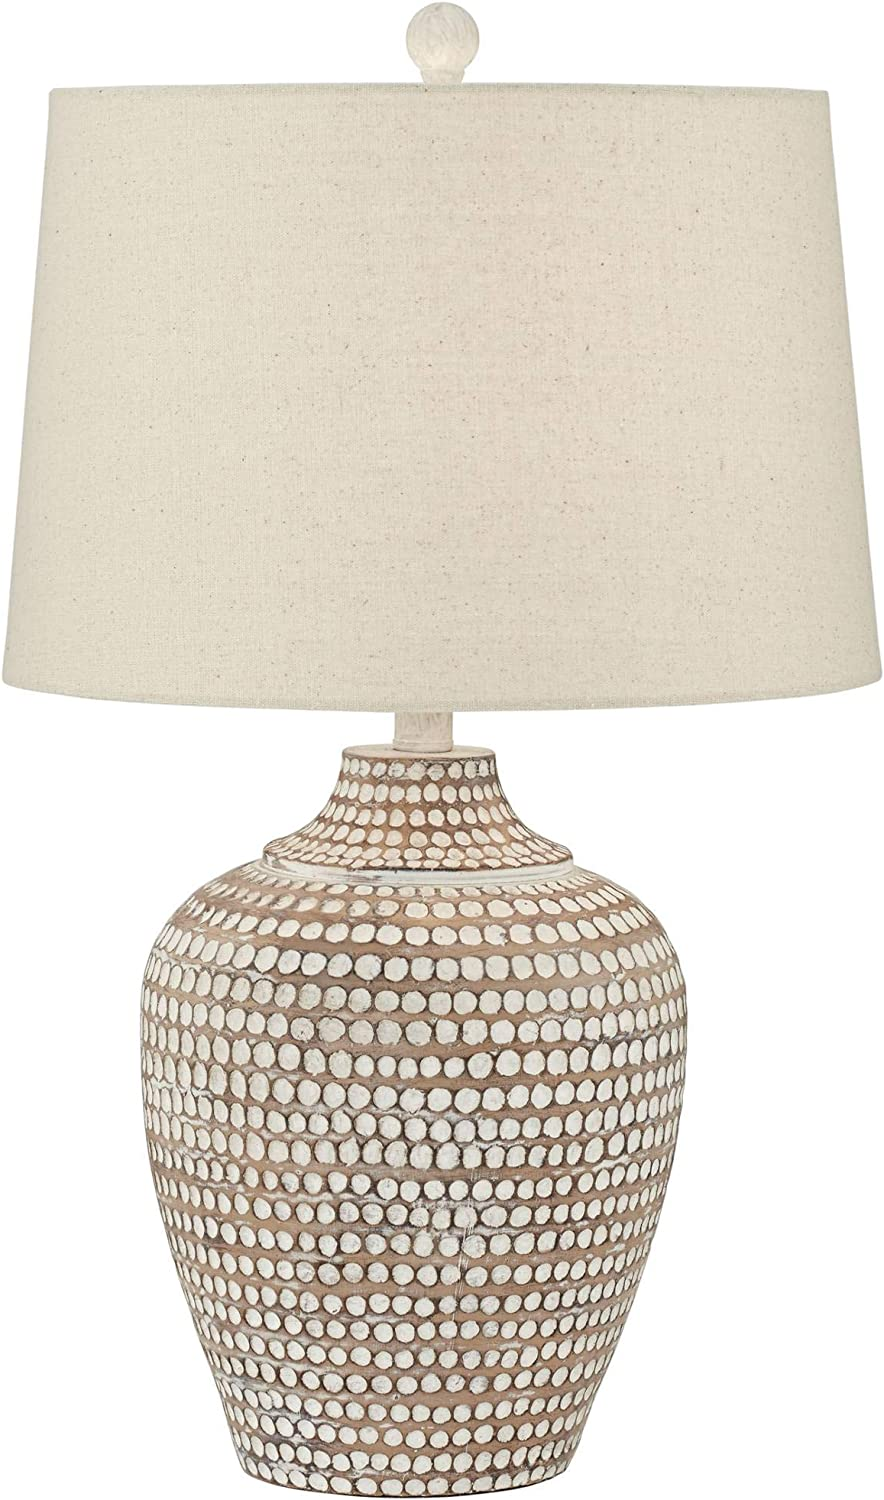 Alese Be super welcome Neutral Earth Polka Jug excellence Table Lamp Dot